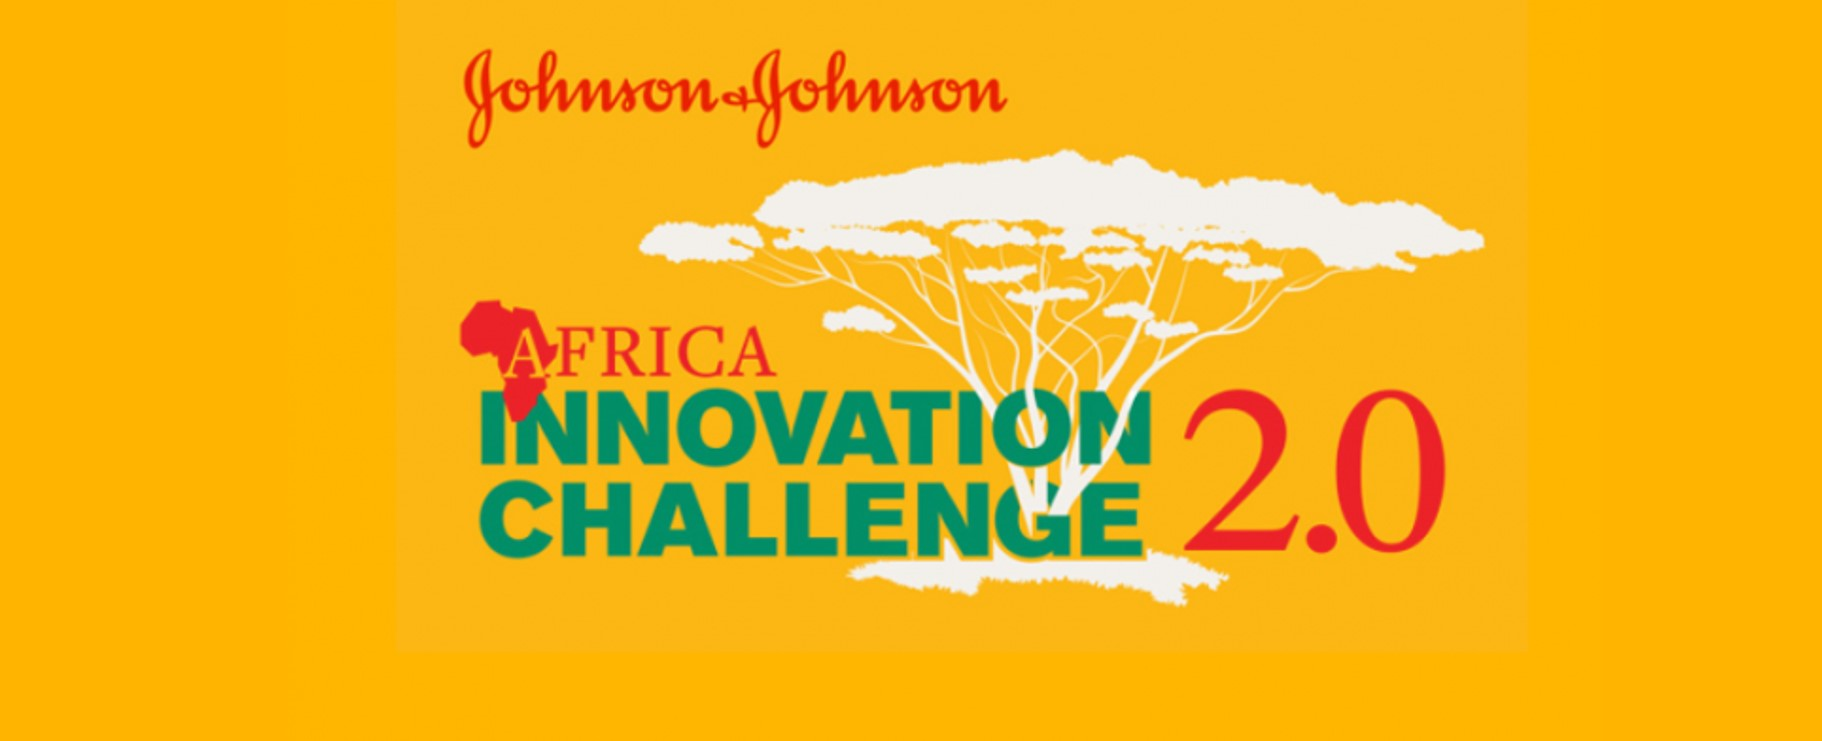 Johnson & Johnson - The Africa Innovation Challenge Movemeback African initiative cover image